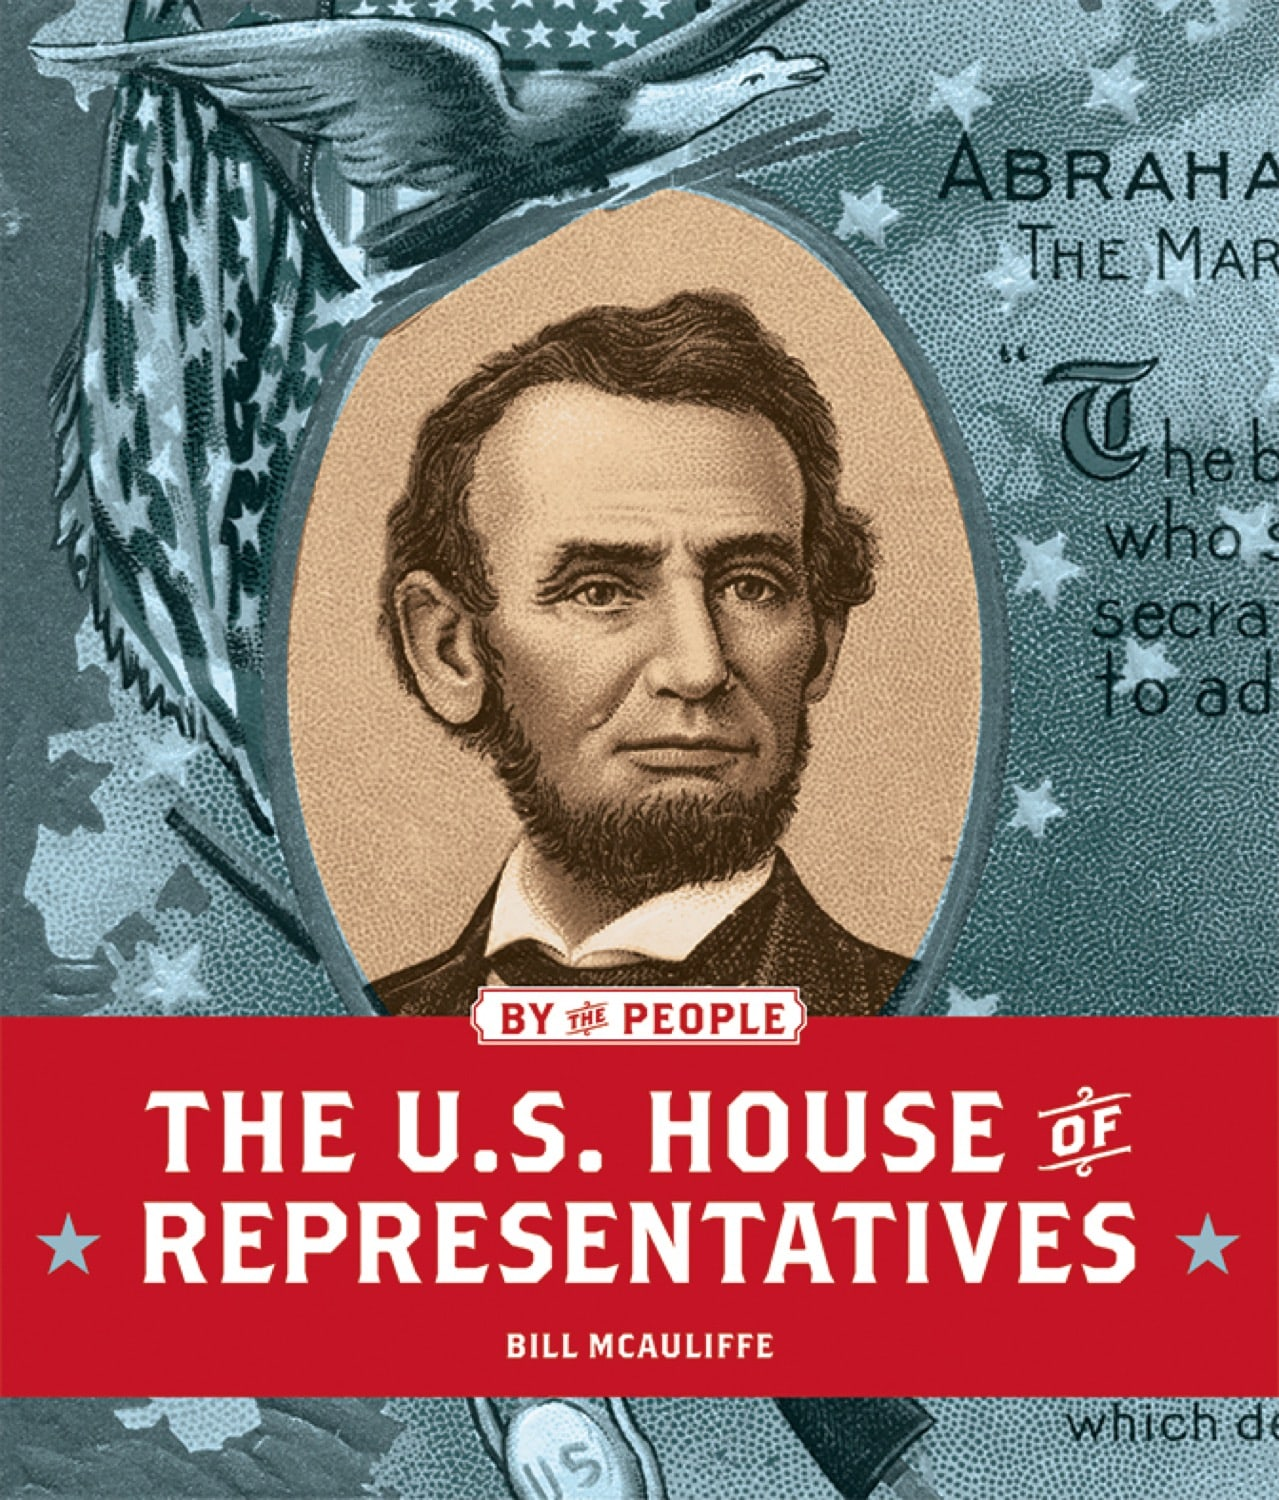 By the People: U.S. House of Representatives, The